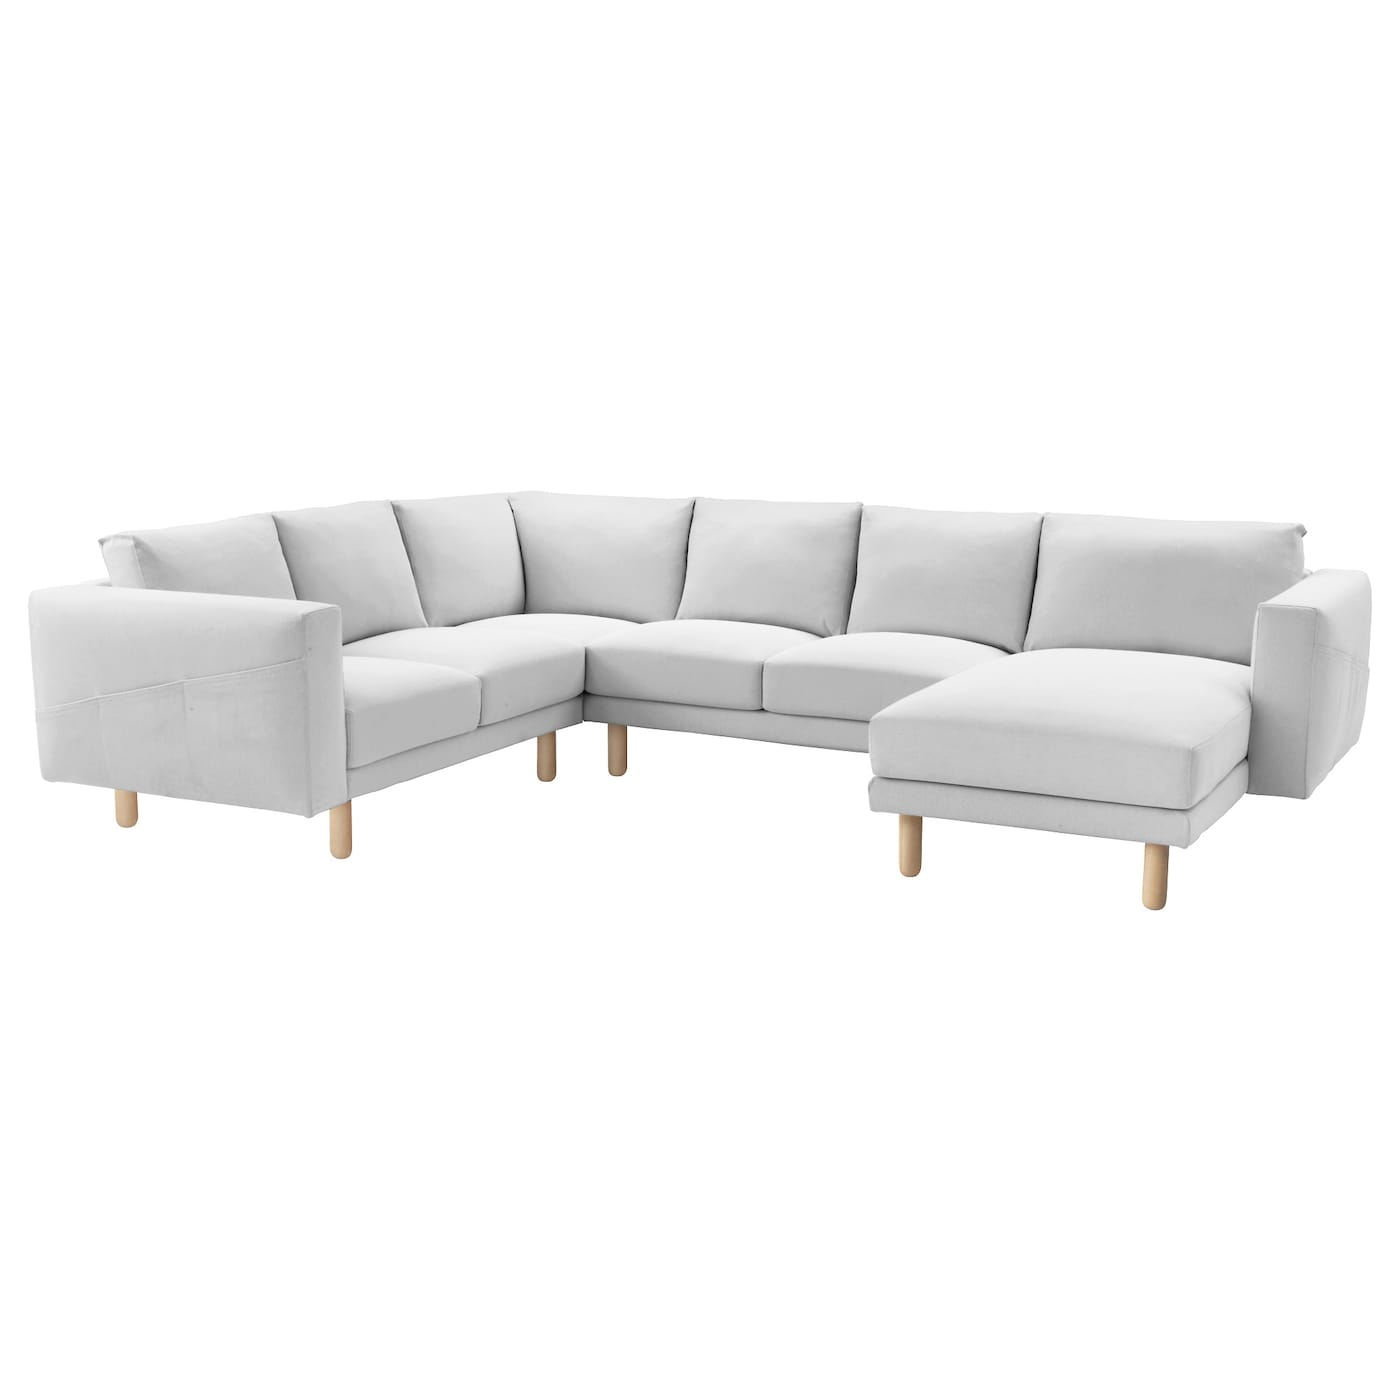 Schlafsofa ecksofa ikea  Free try out of NeoWall Sofa from Living Divani in 3D, VR and AR